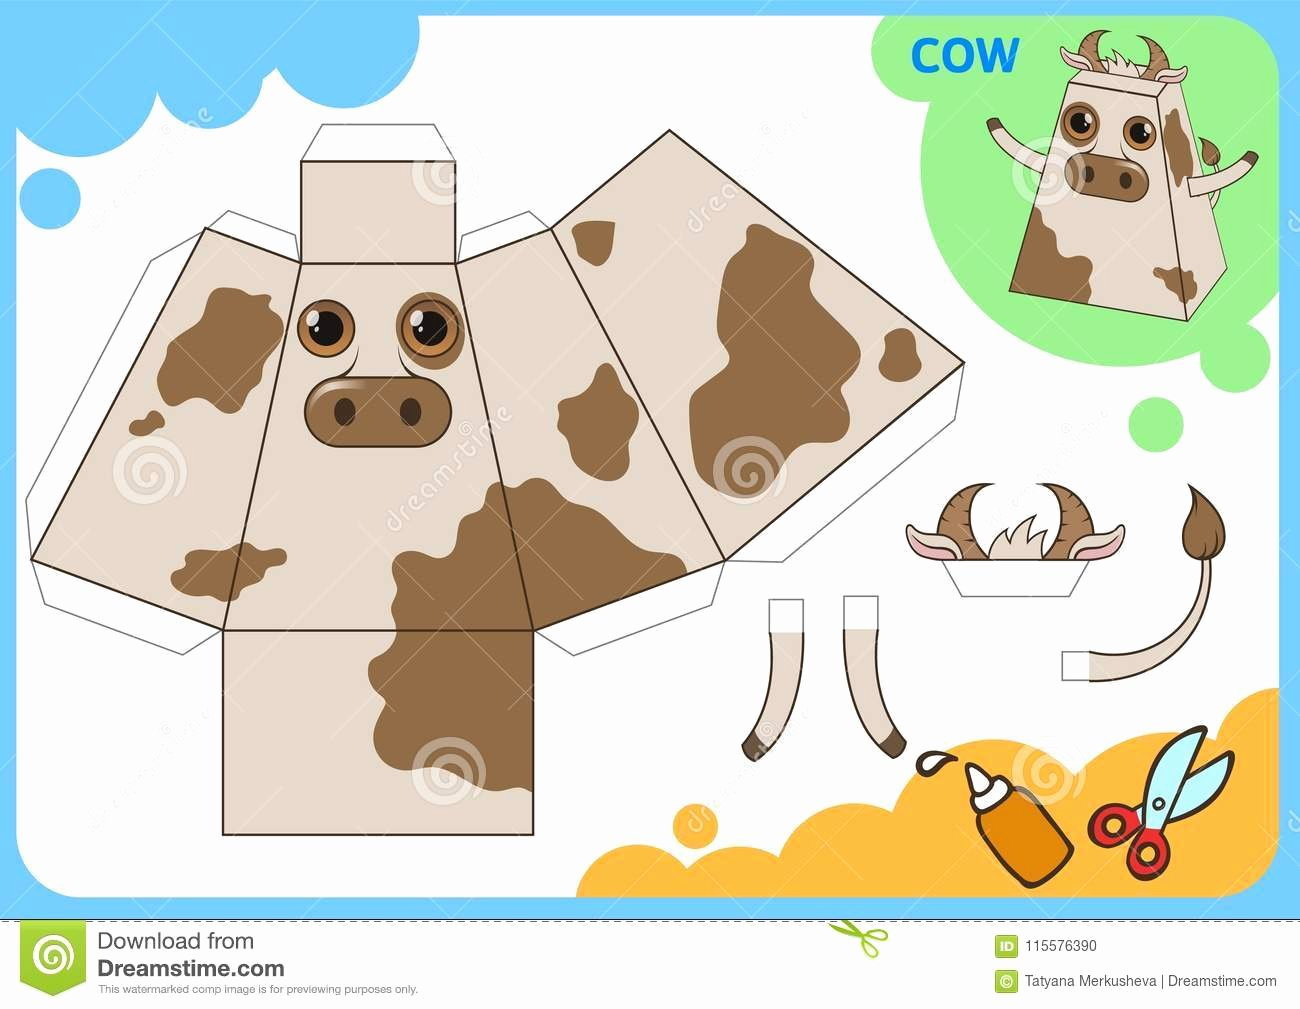 funny cow paper model small home craft project diy cut out fold glue cutouts children vector template game image